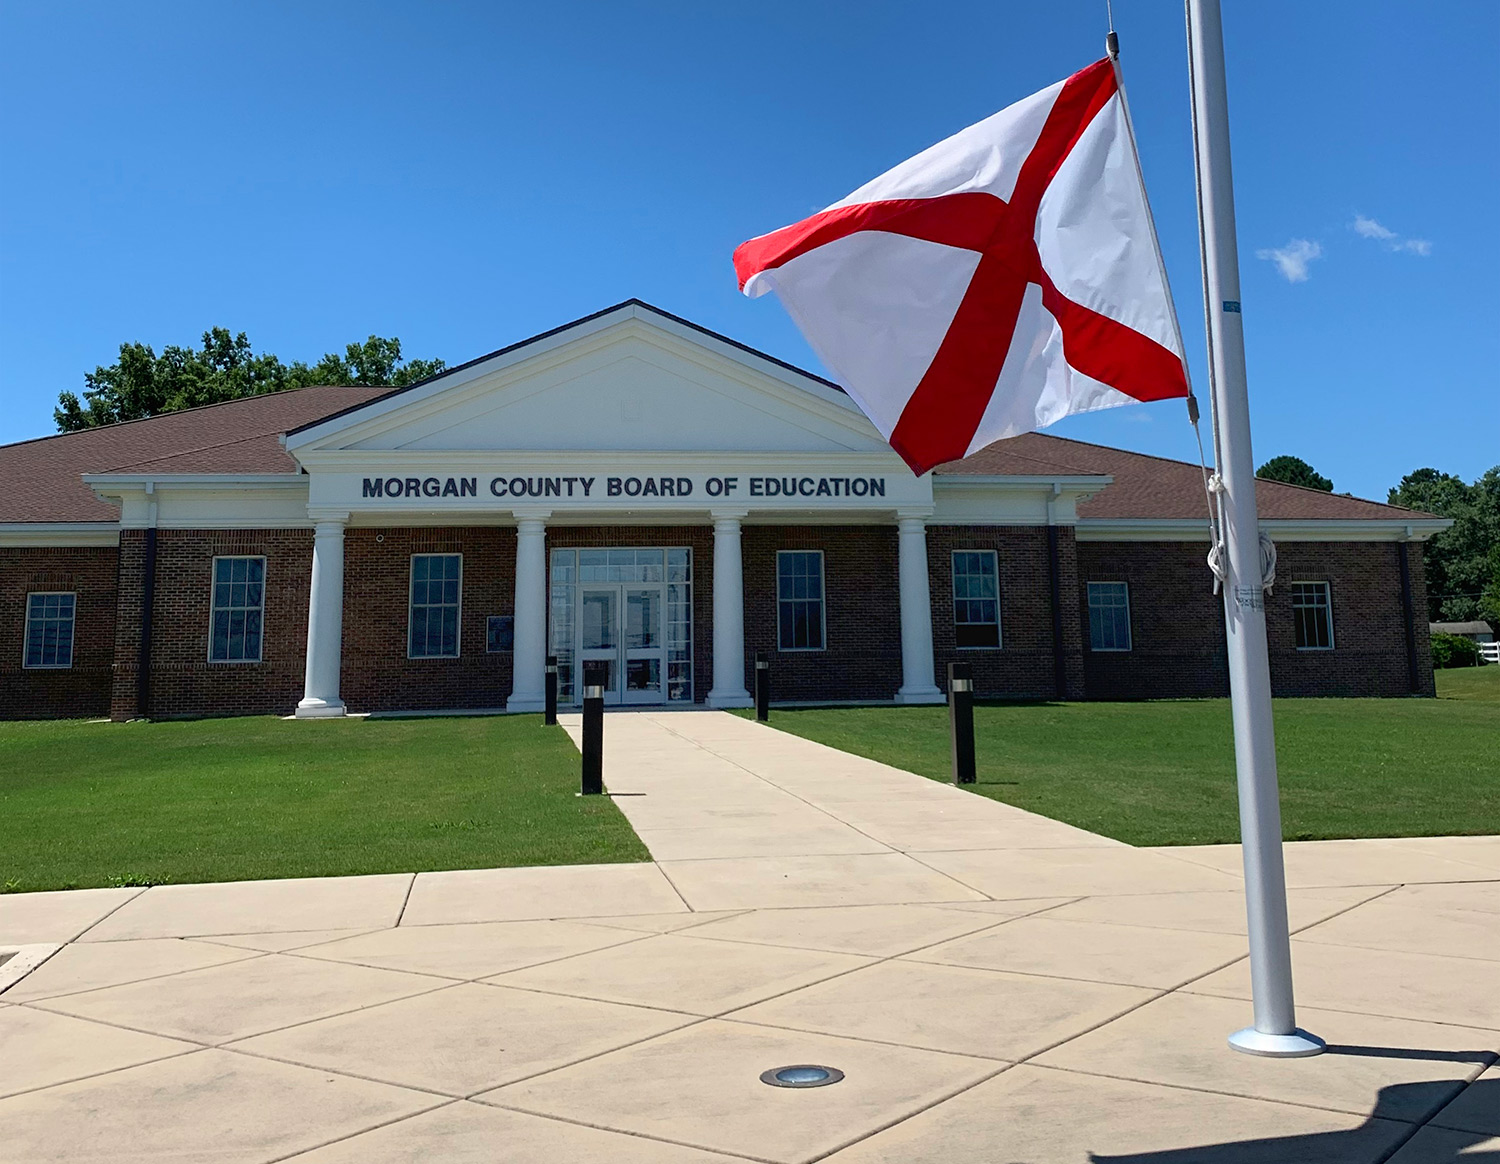 DCEC Project - Morgan County Board of Education